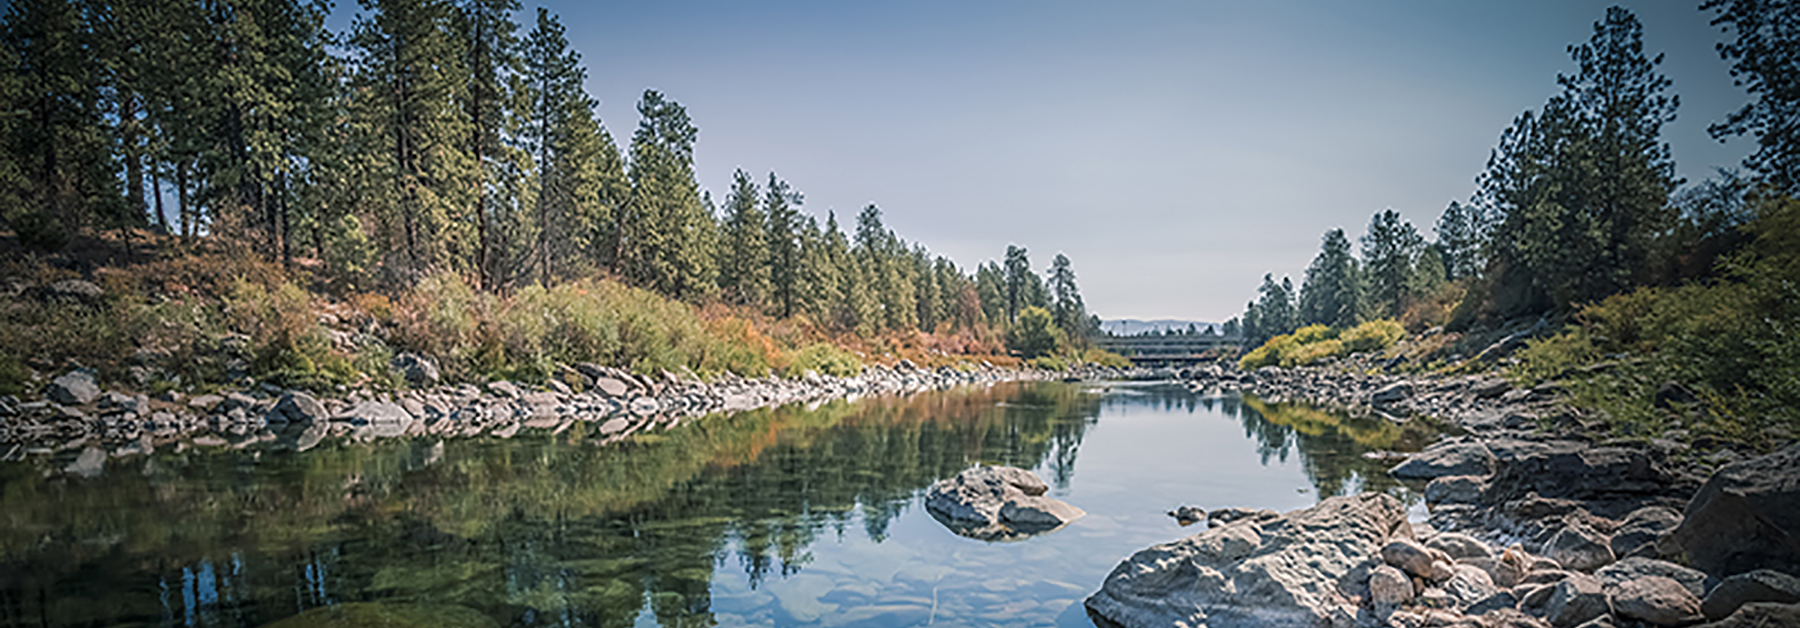 Image of the Spokane river in spring, with trees in the background